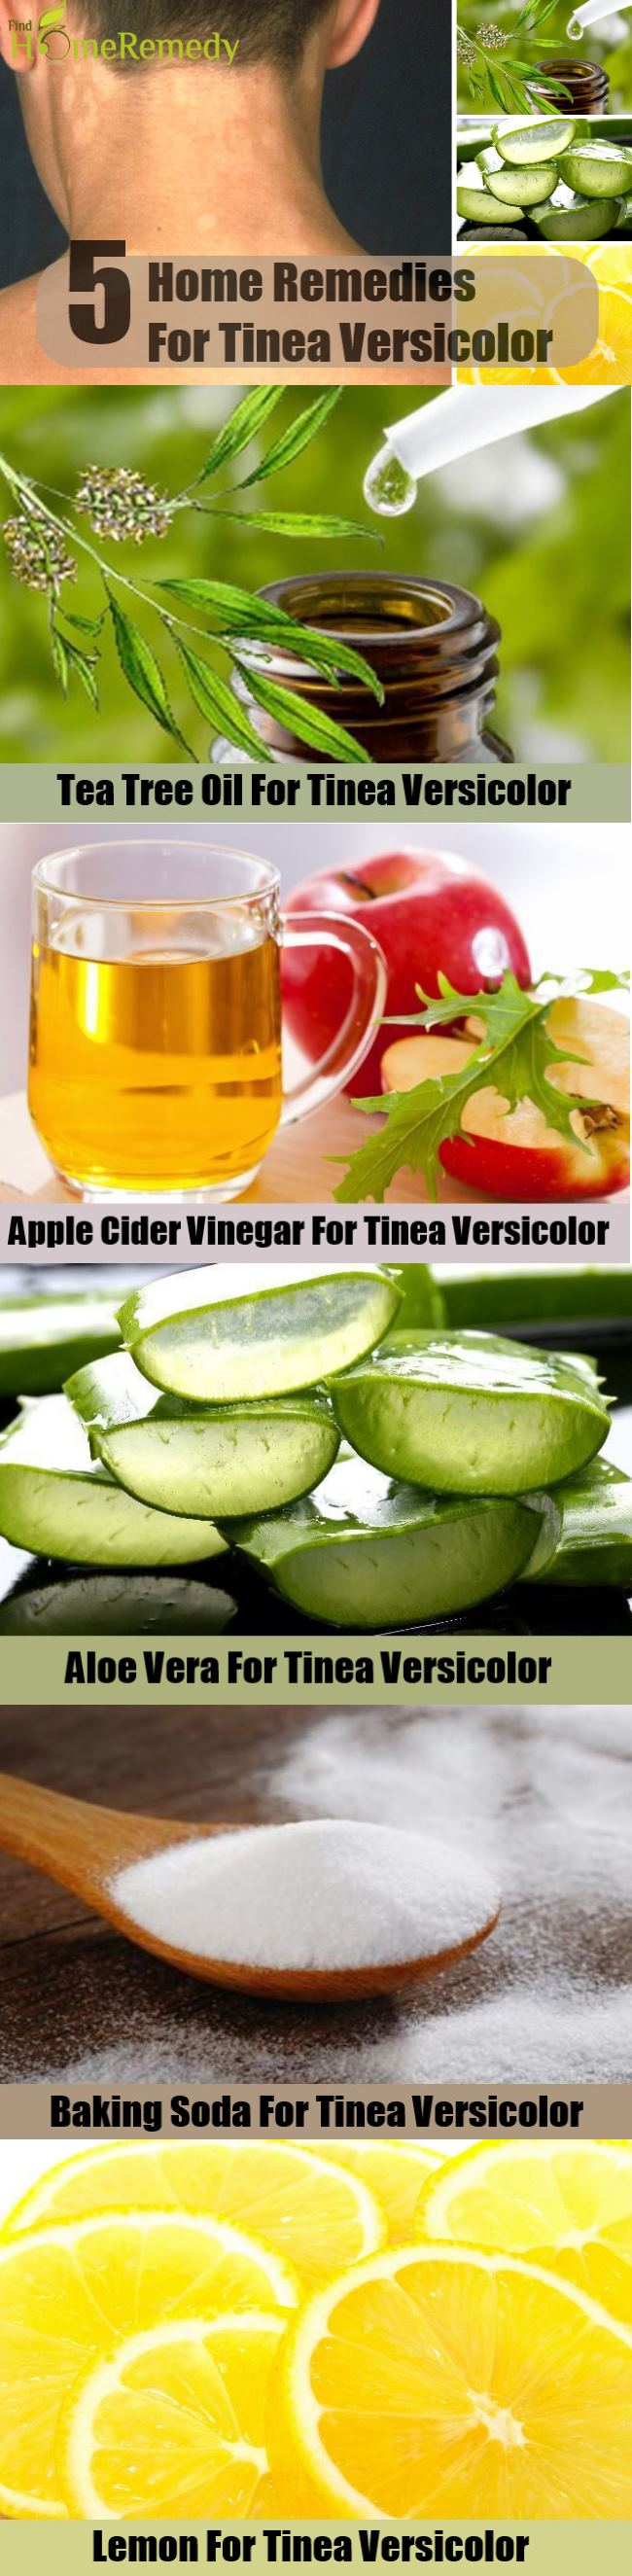 5 Home Remedies For Tinea Versicolor